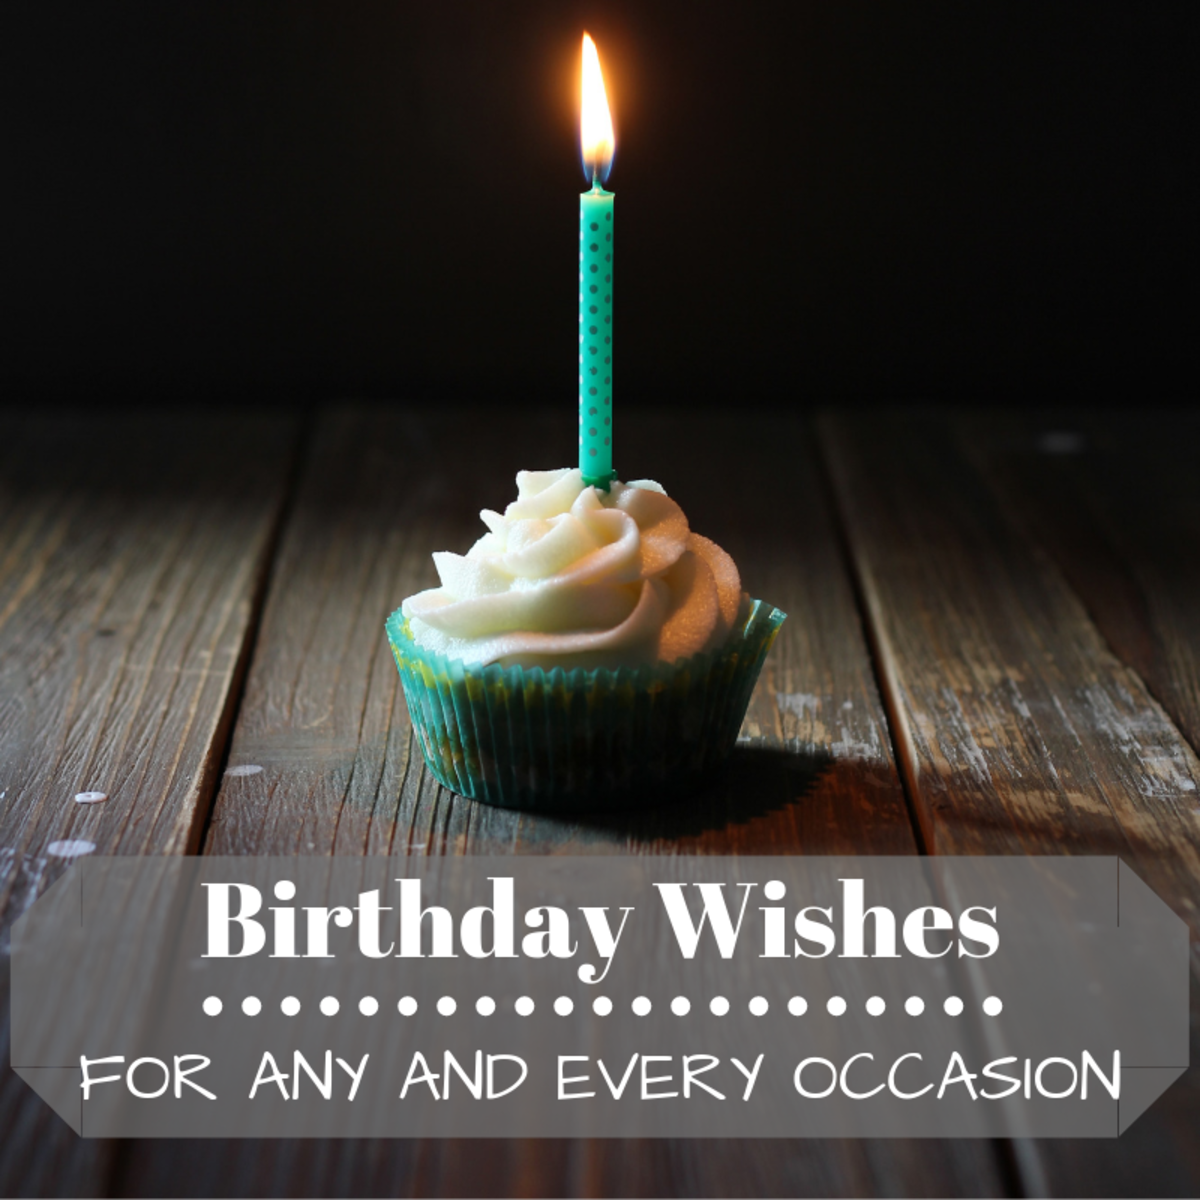 Birthdays are big! Find the right words for their special occasion.